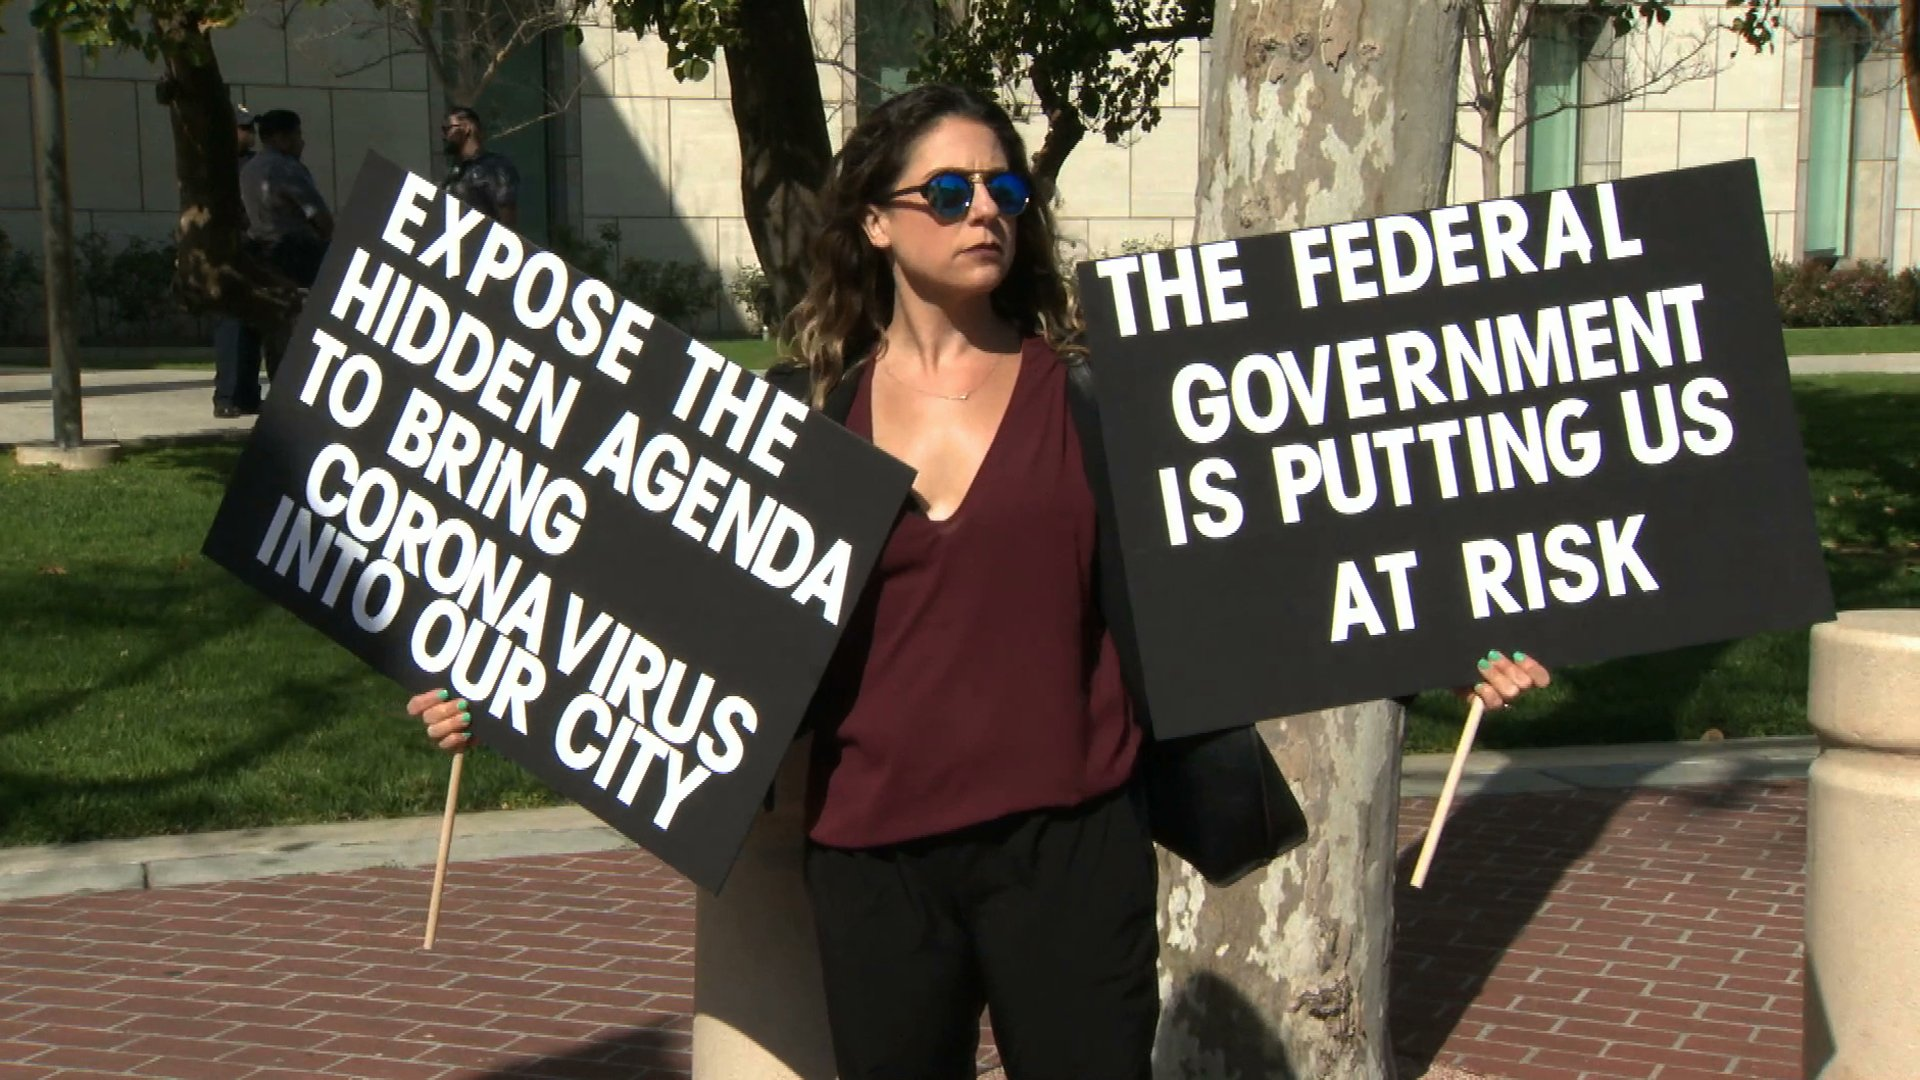 A woman demonstrates against a proposal to quarantine coronavirus patients at a Costa Mesa facility on Feb. 24, 2020. (Credit: KTLA(